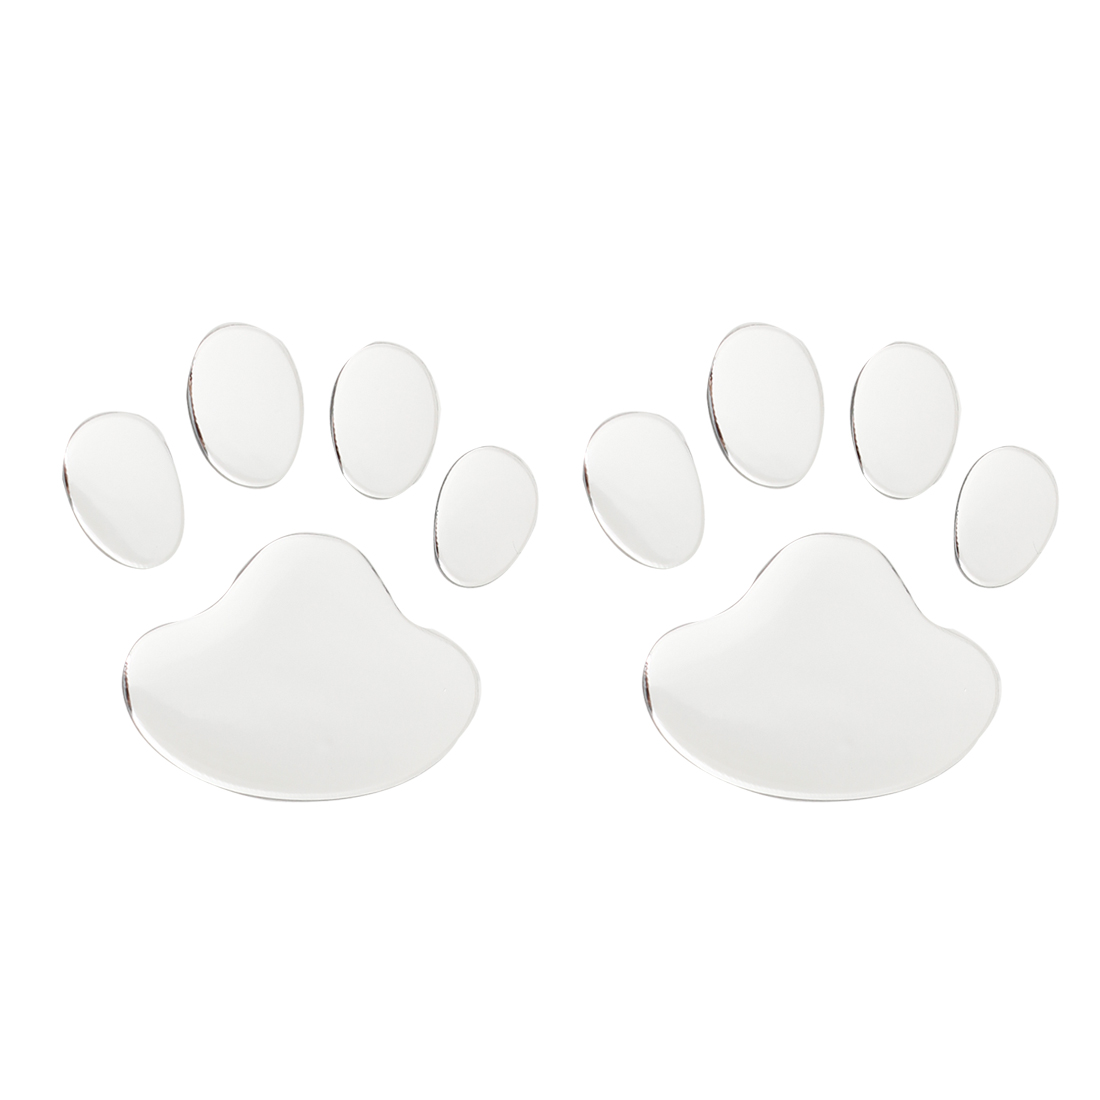 2pcs Silver Tone Dog Footprint Badge Emblems Sticker for Auto Car